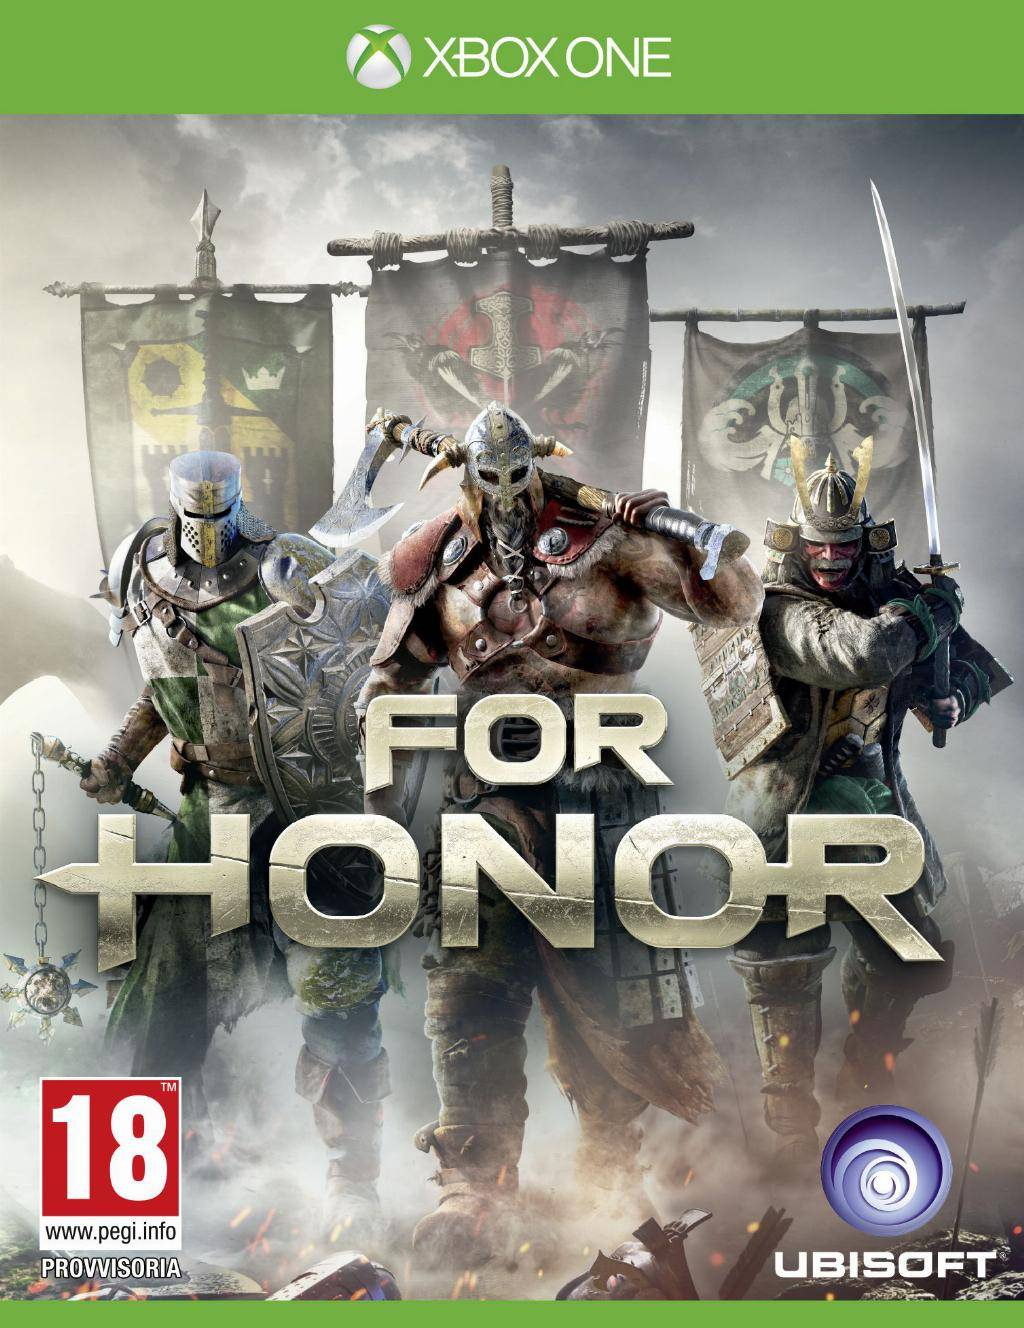 ubisoft for honor, xbox one